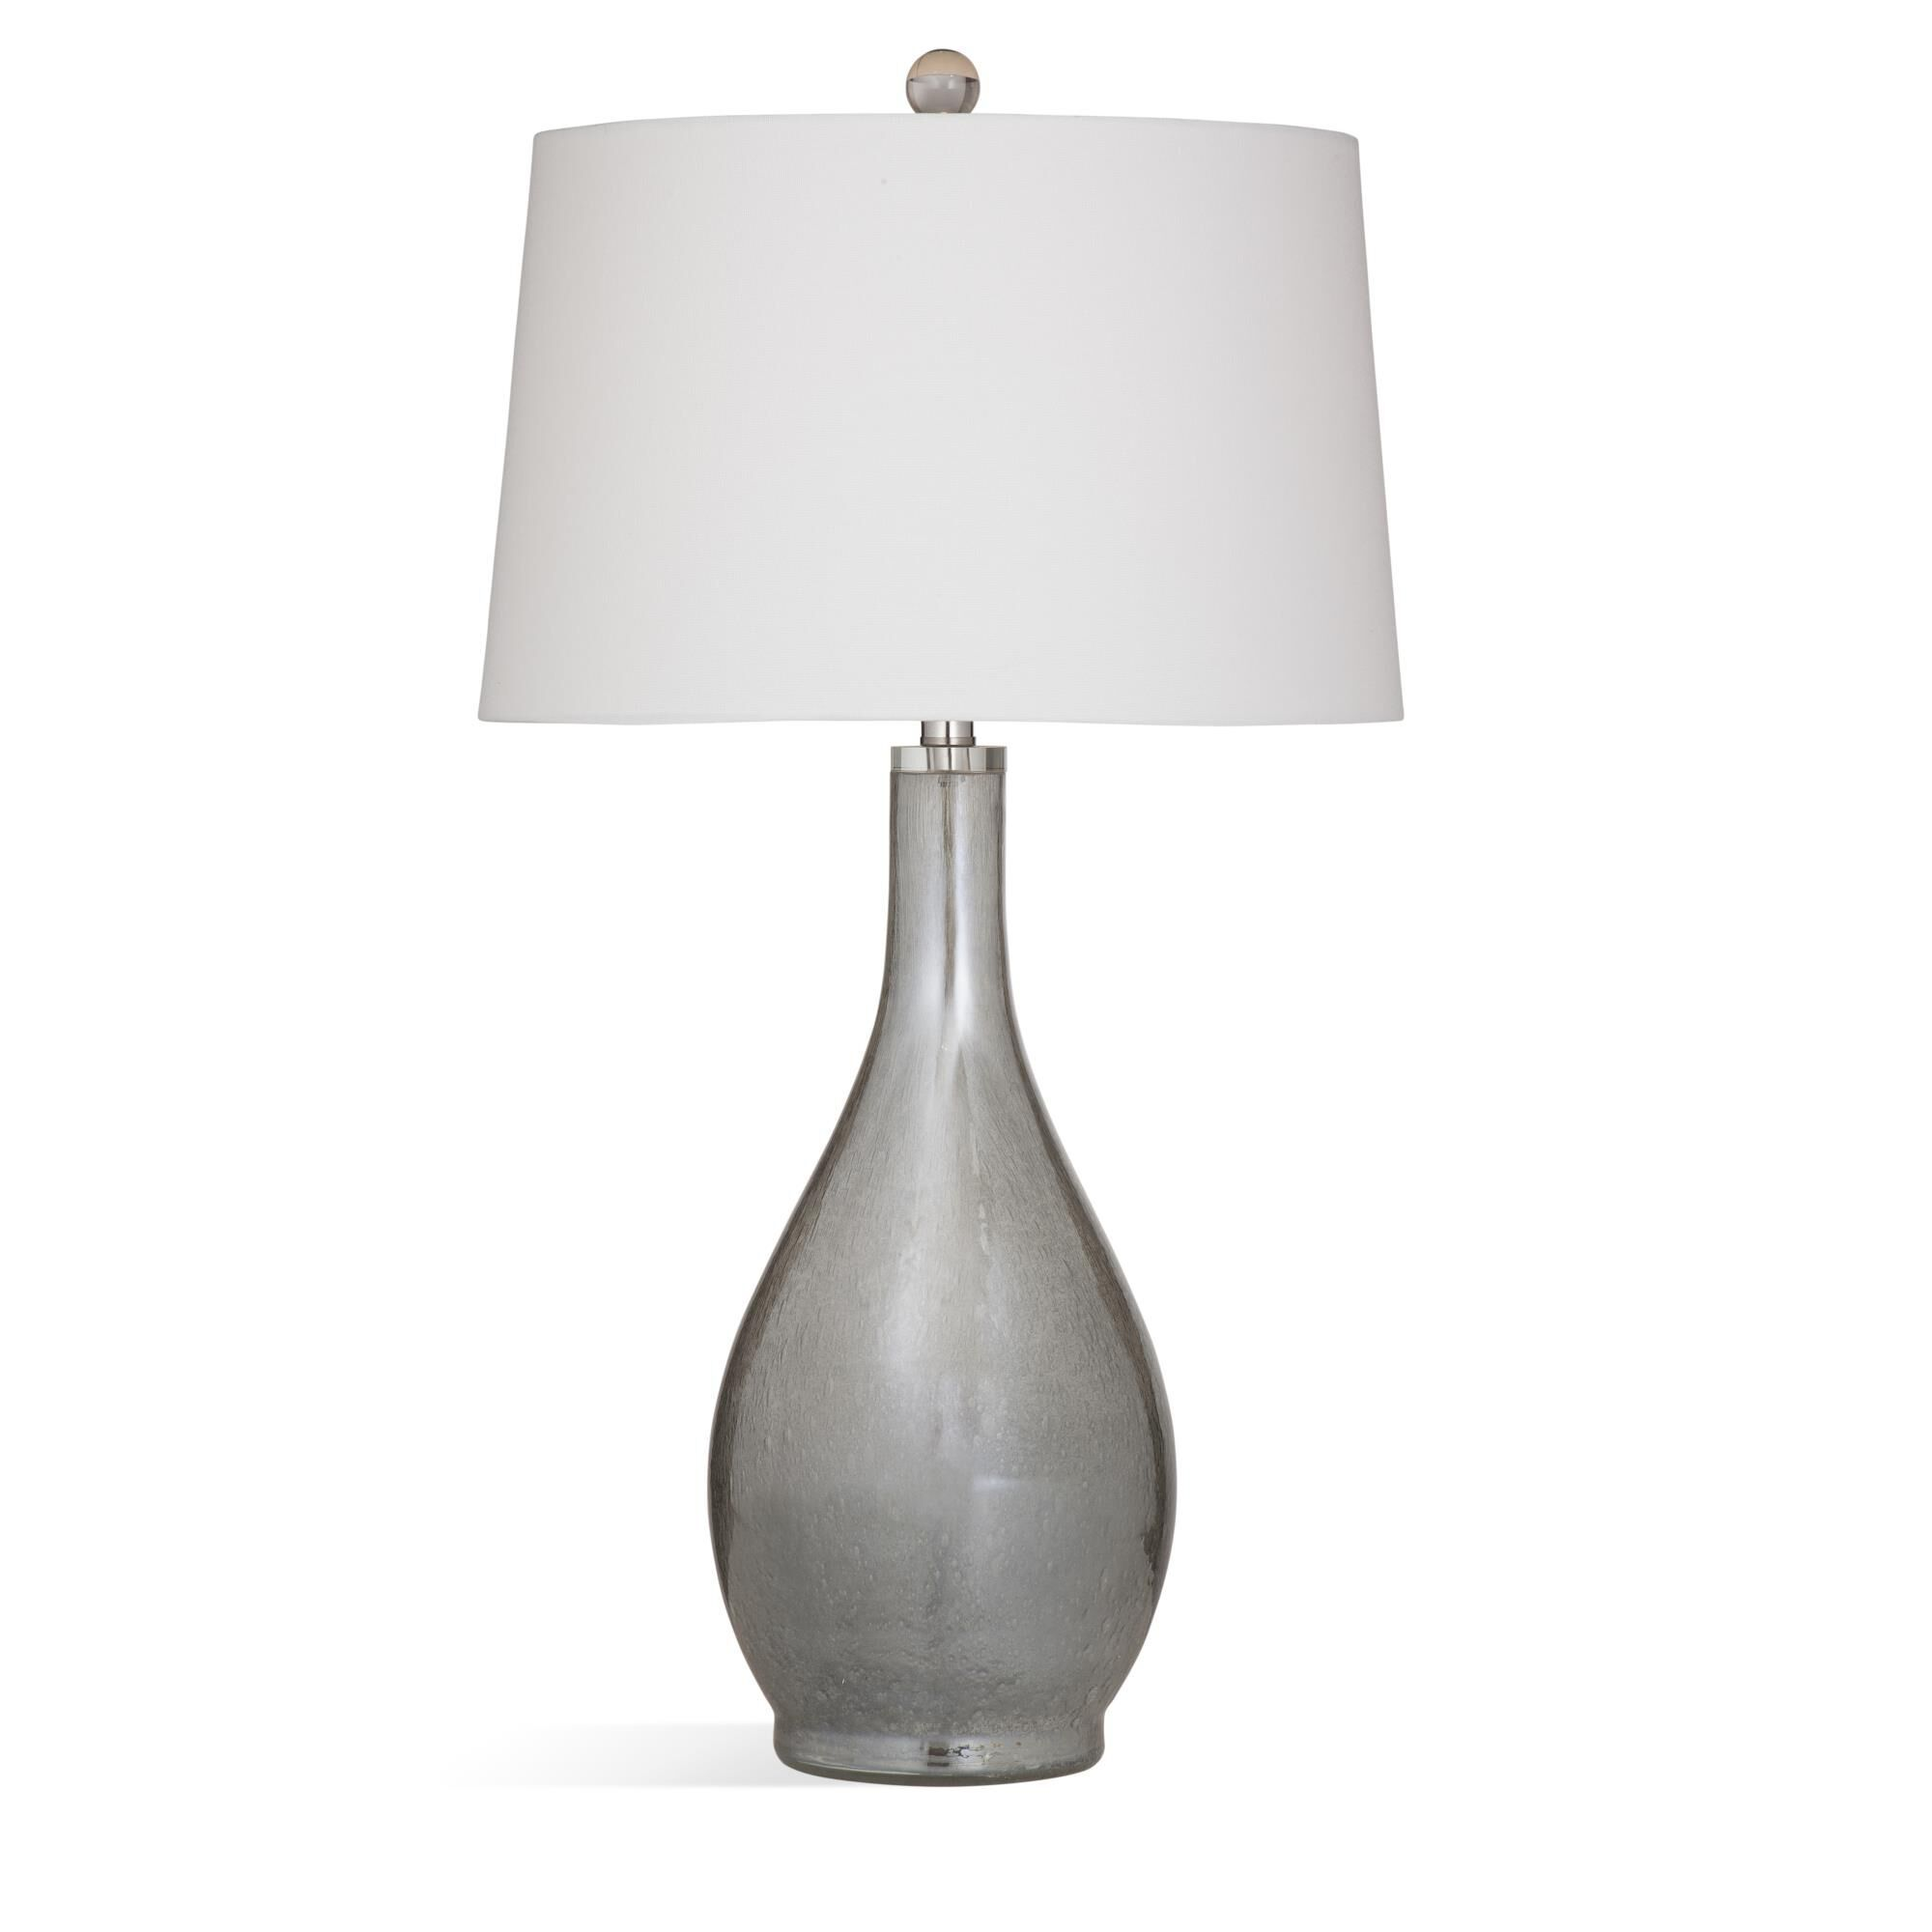 Glass 32 Inch Table Lamp Capitol Lighting In 2021 Table Lamp Glass Table Lamp Lamp